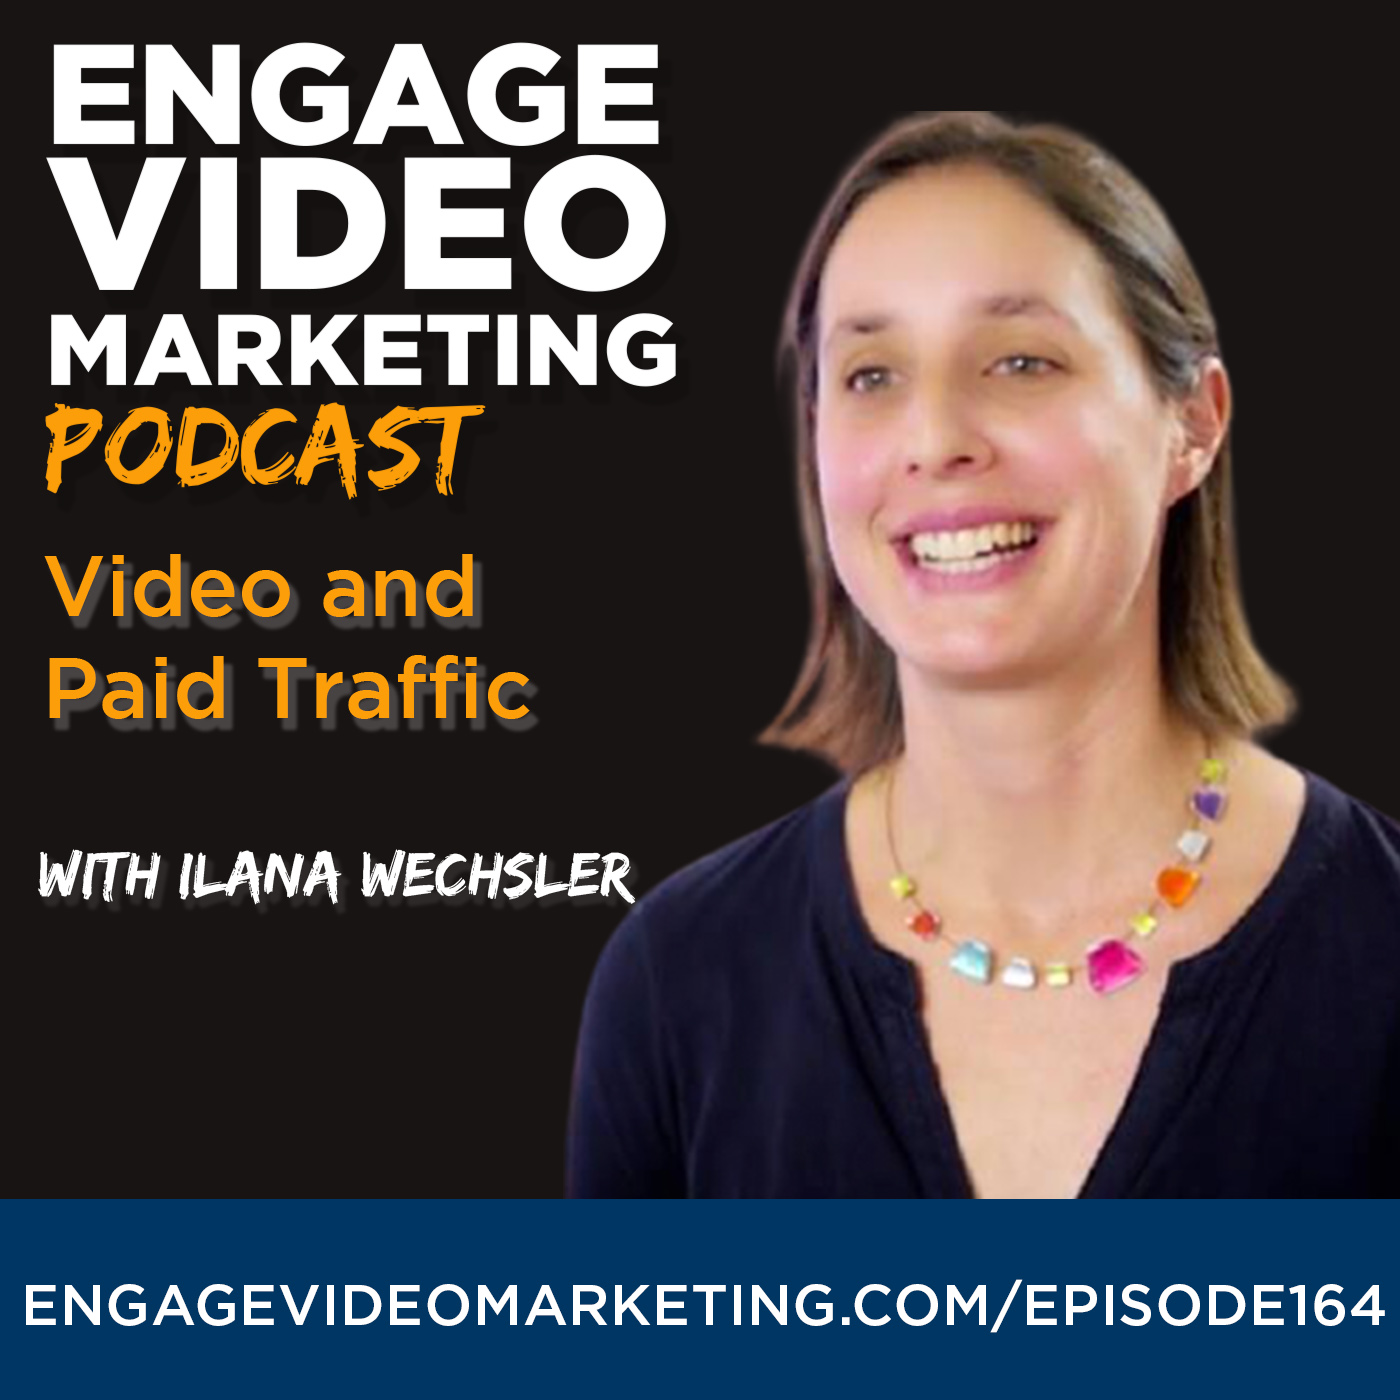 Video and Paid Traffic with Ilana Wechsler